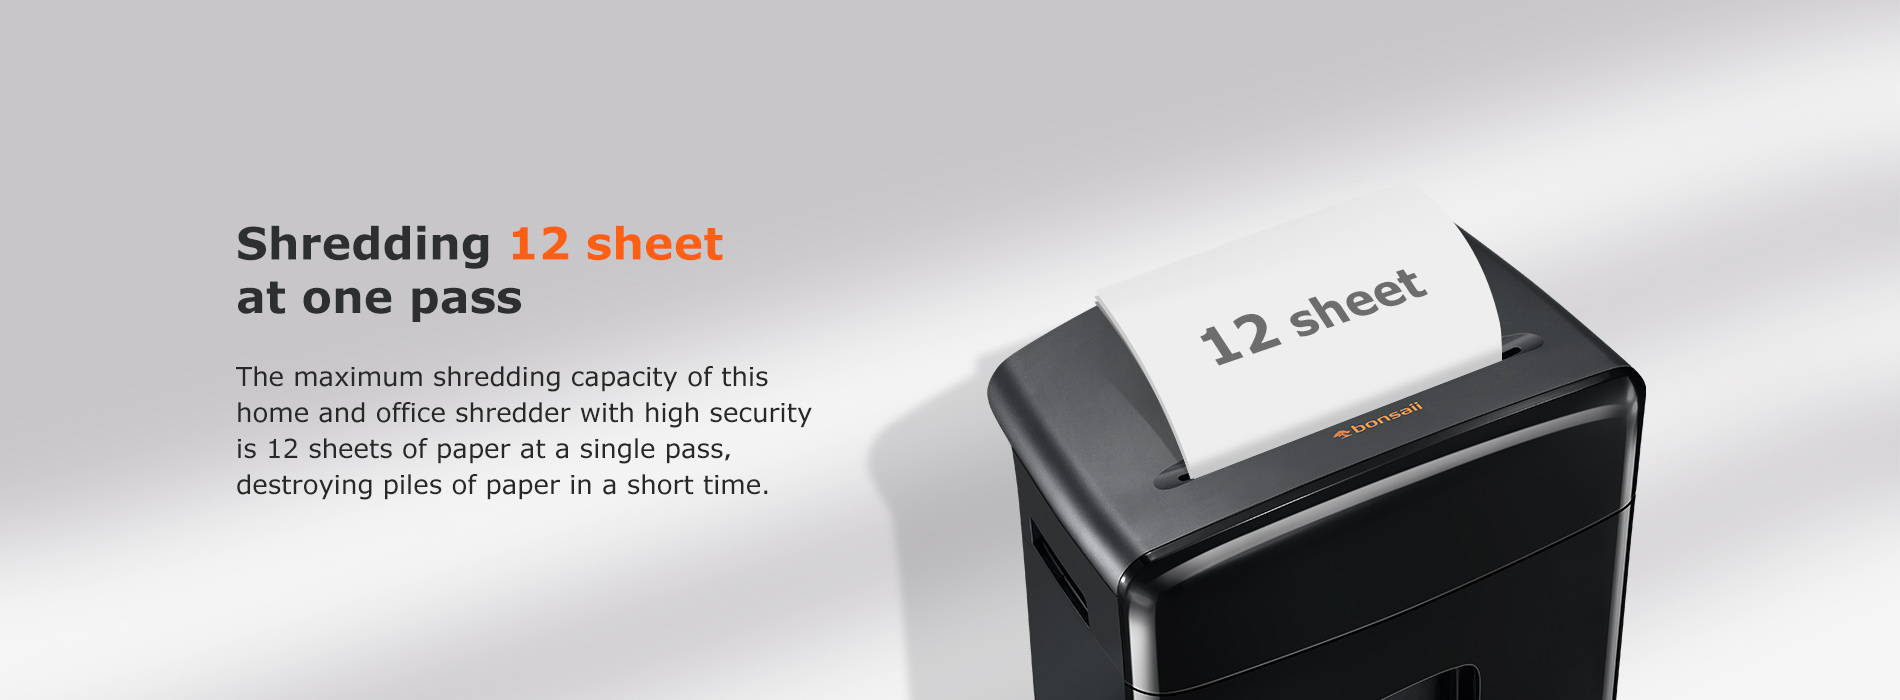 Shredding 12 sheet at one pass The maximum shredding capacity of this home and office shredder with high security is 10 sheets of paper at a single pass, destroying piles of paper in a short time.